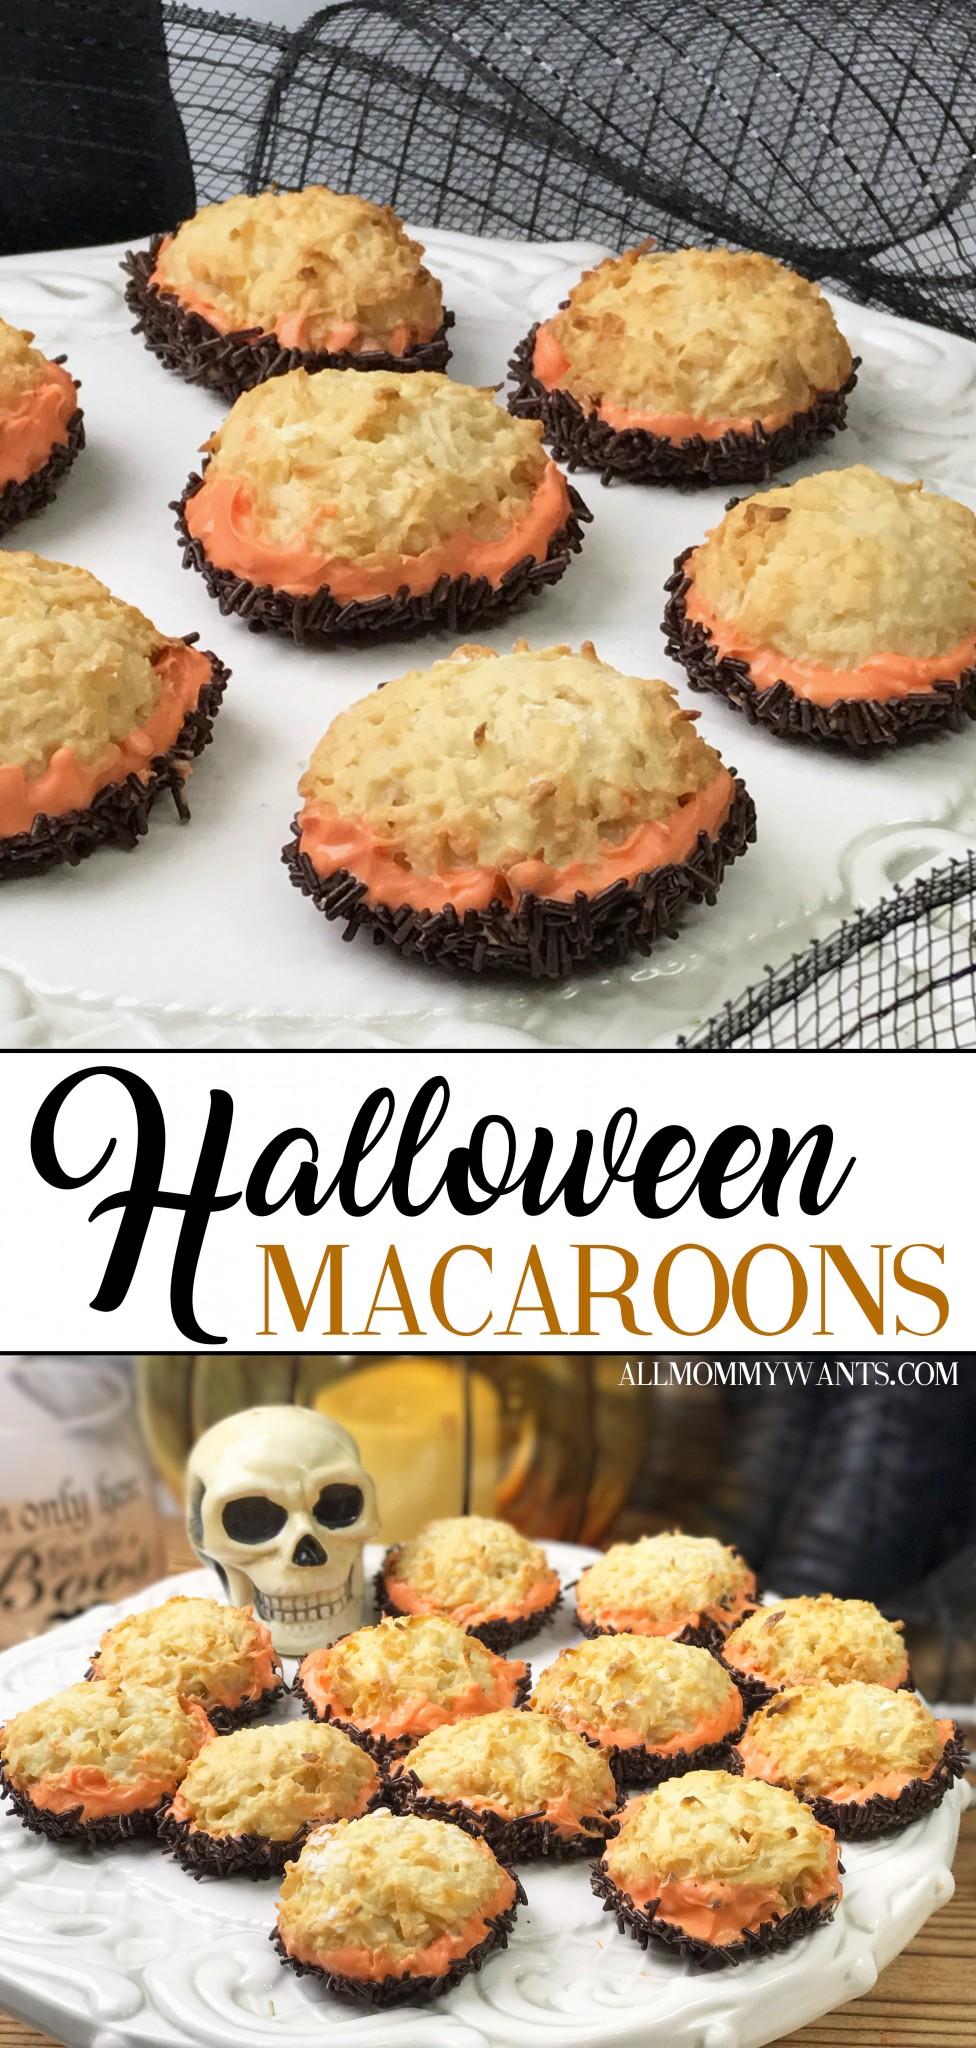 These Halloween macaroons are INCREDIBLY easy to make! Coconut, sprinkles, and chocolate make the perfect combo...